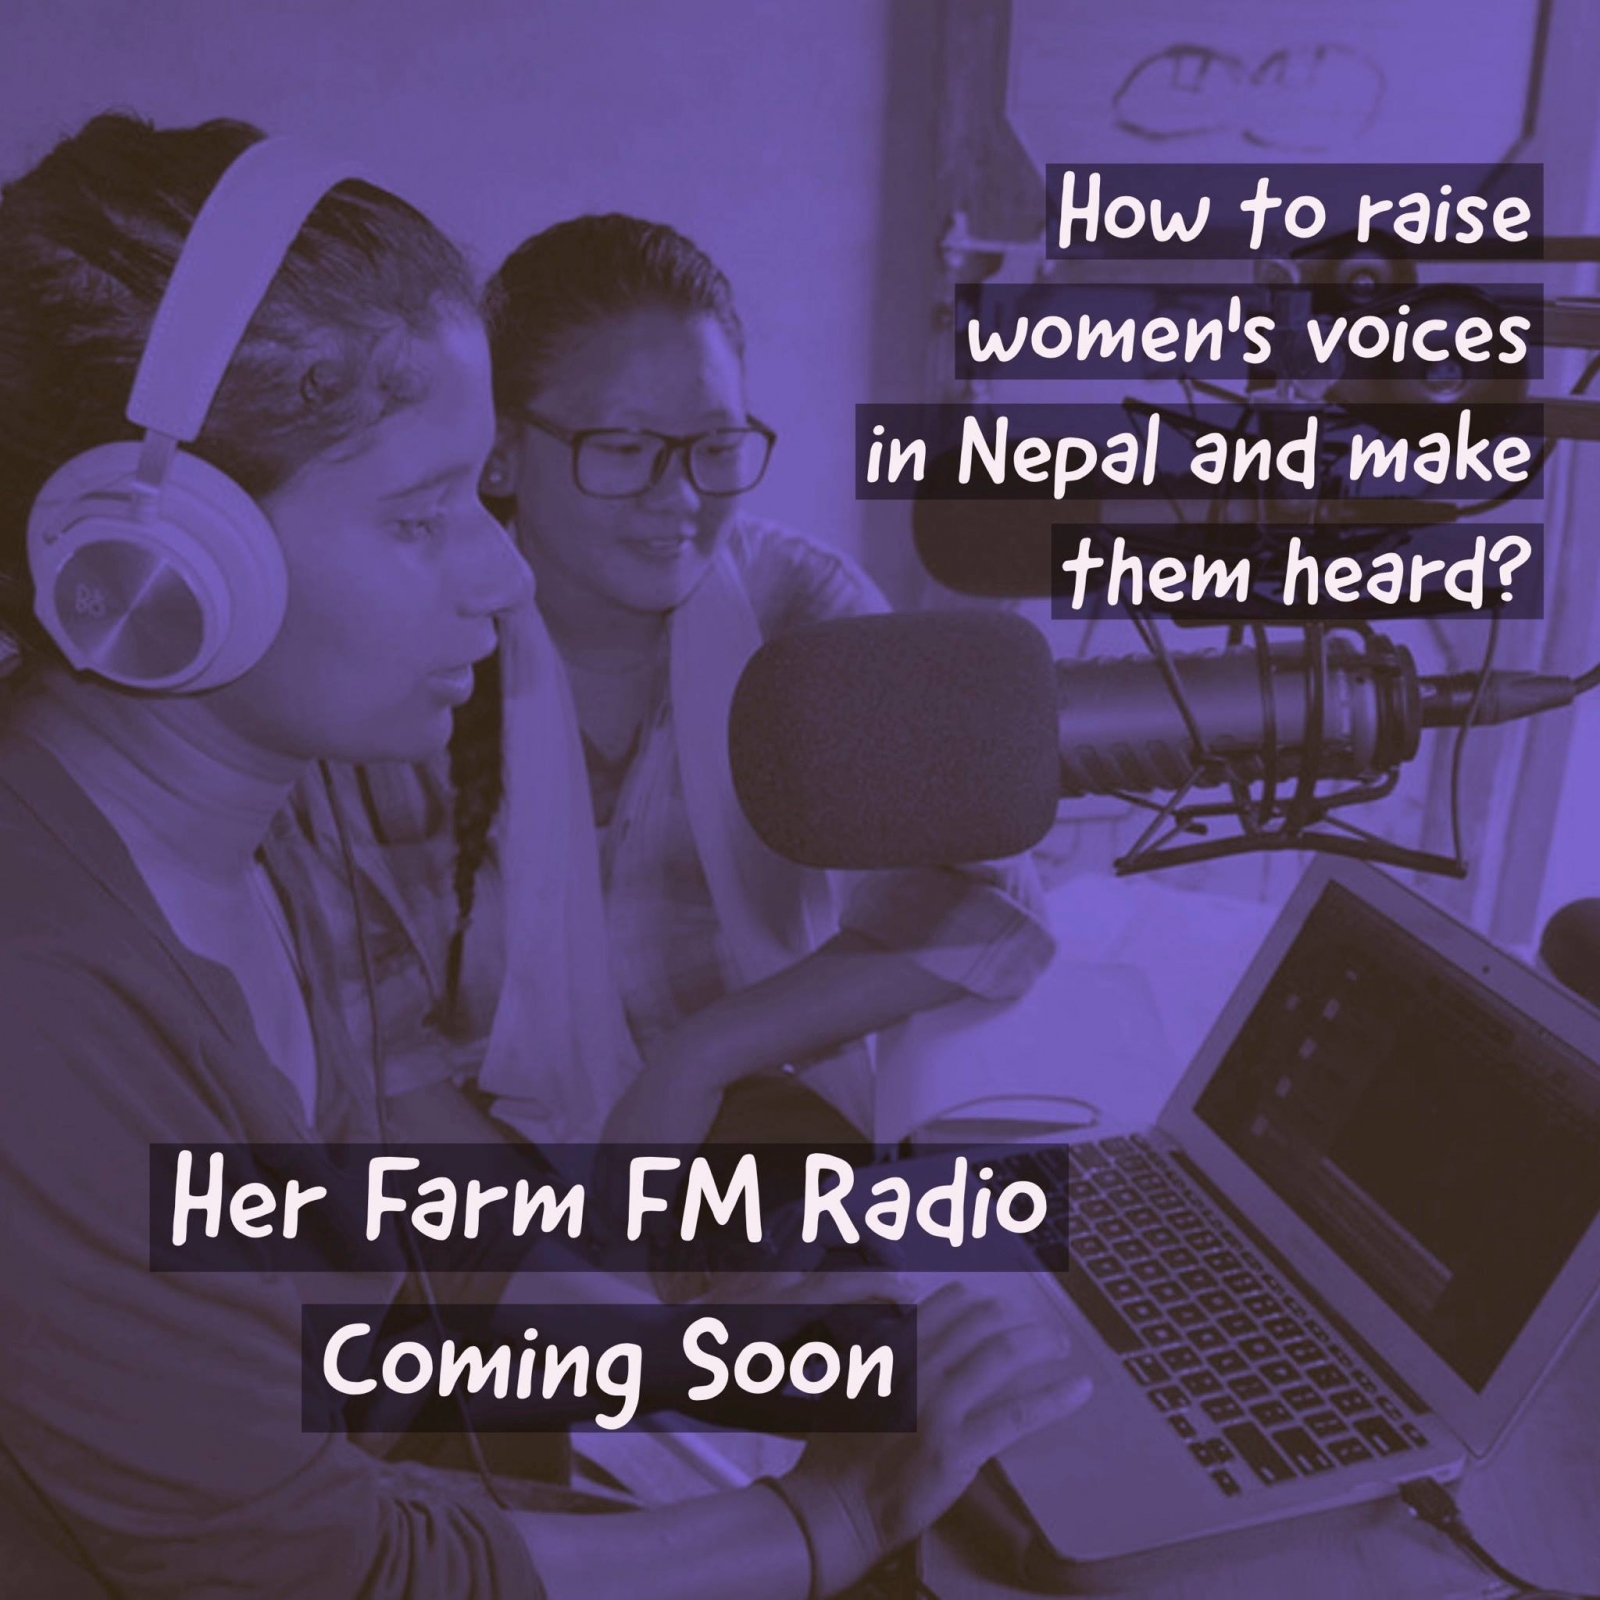 Her Farm FM Radio Coming Soon